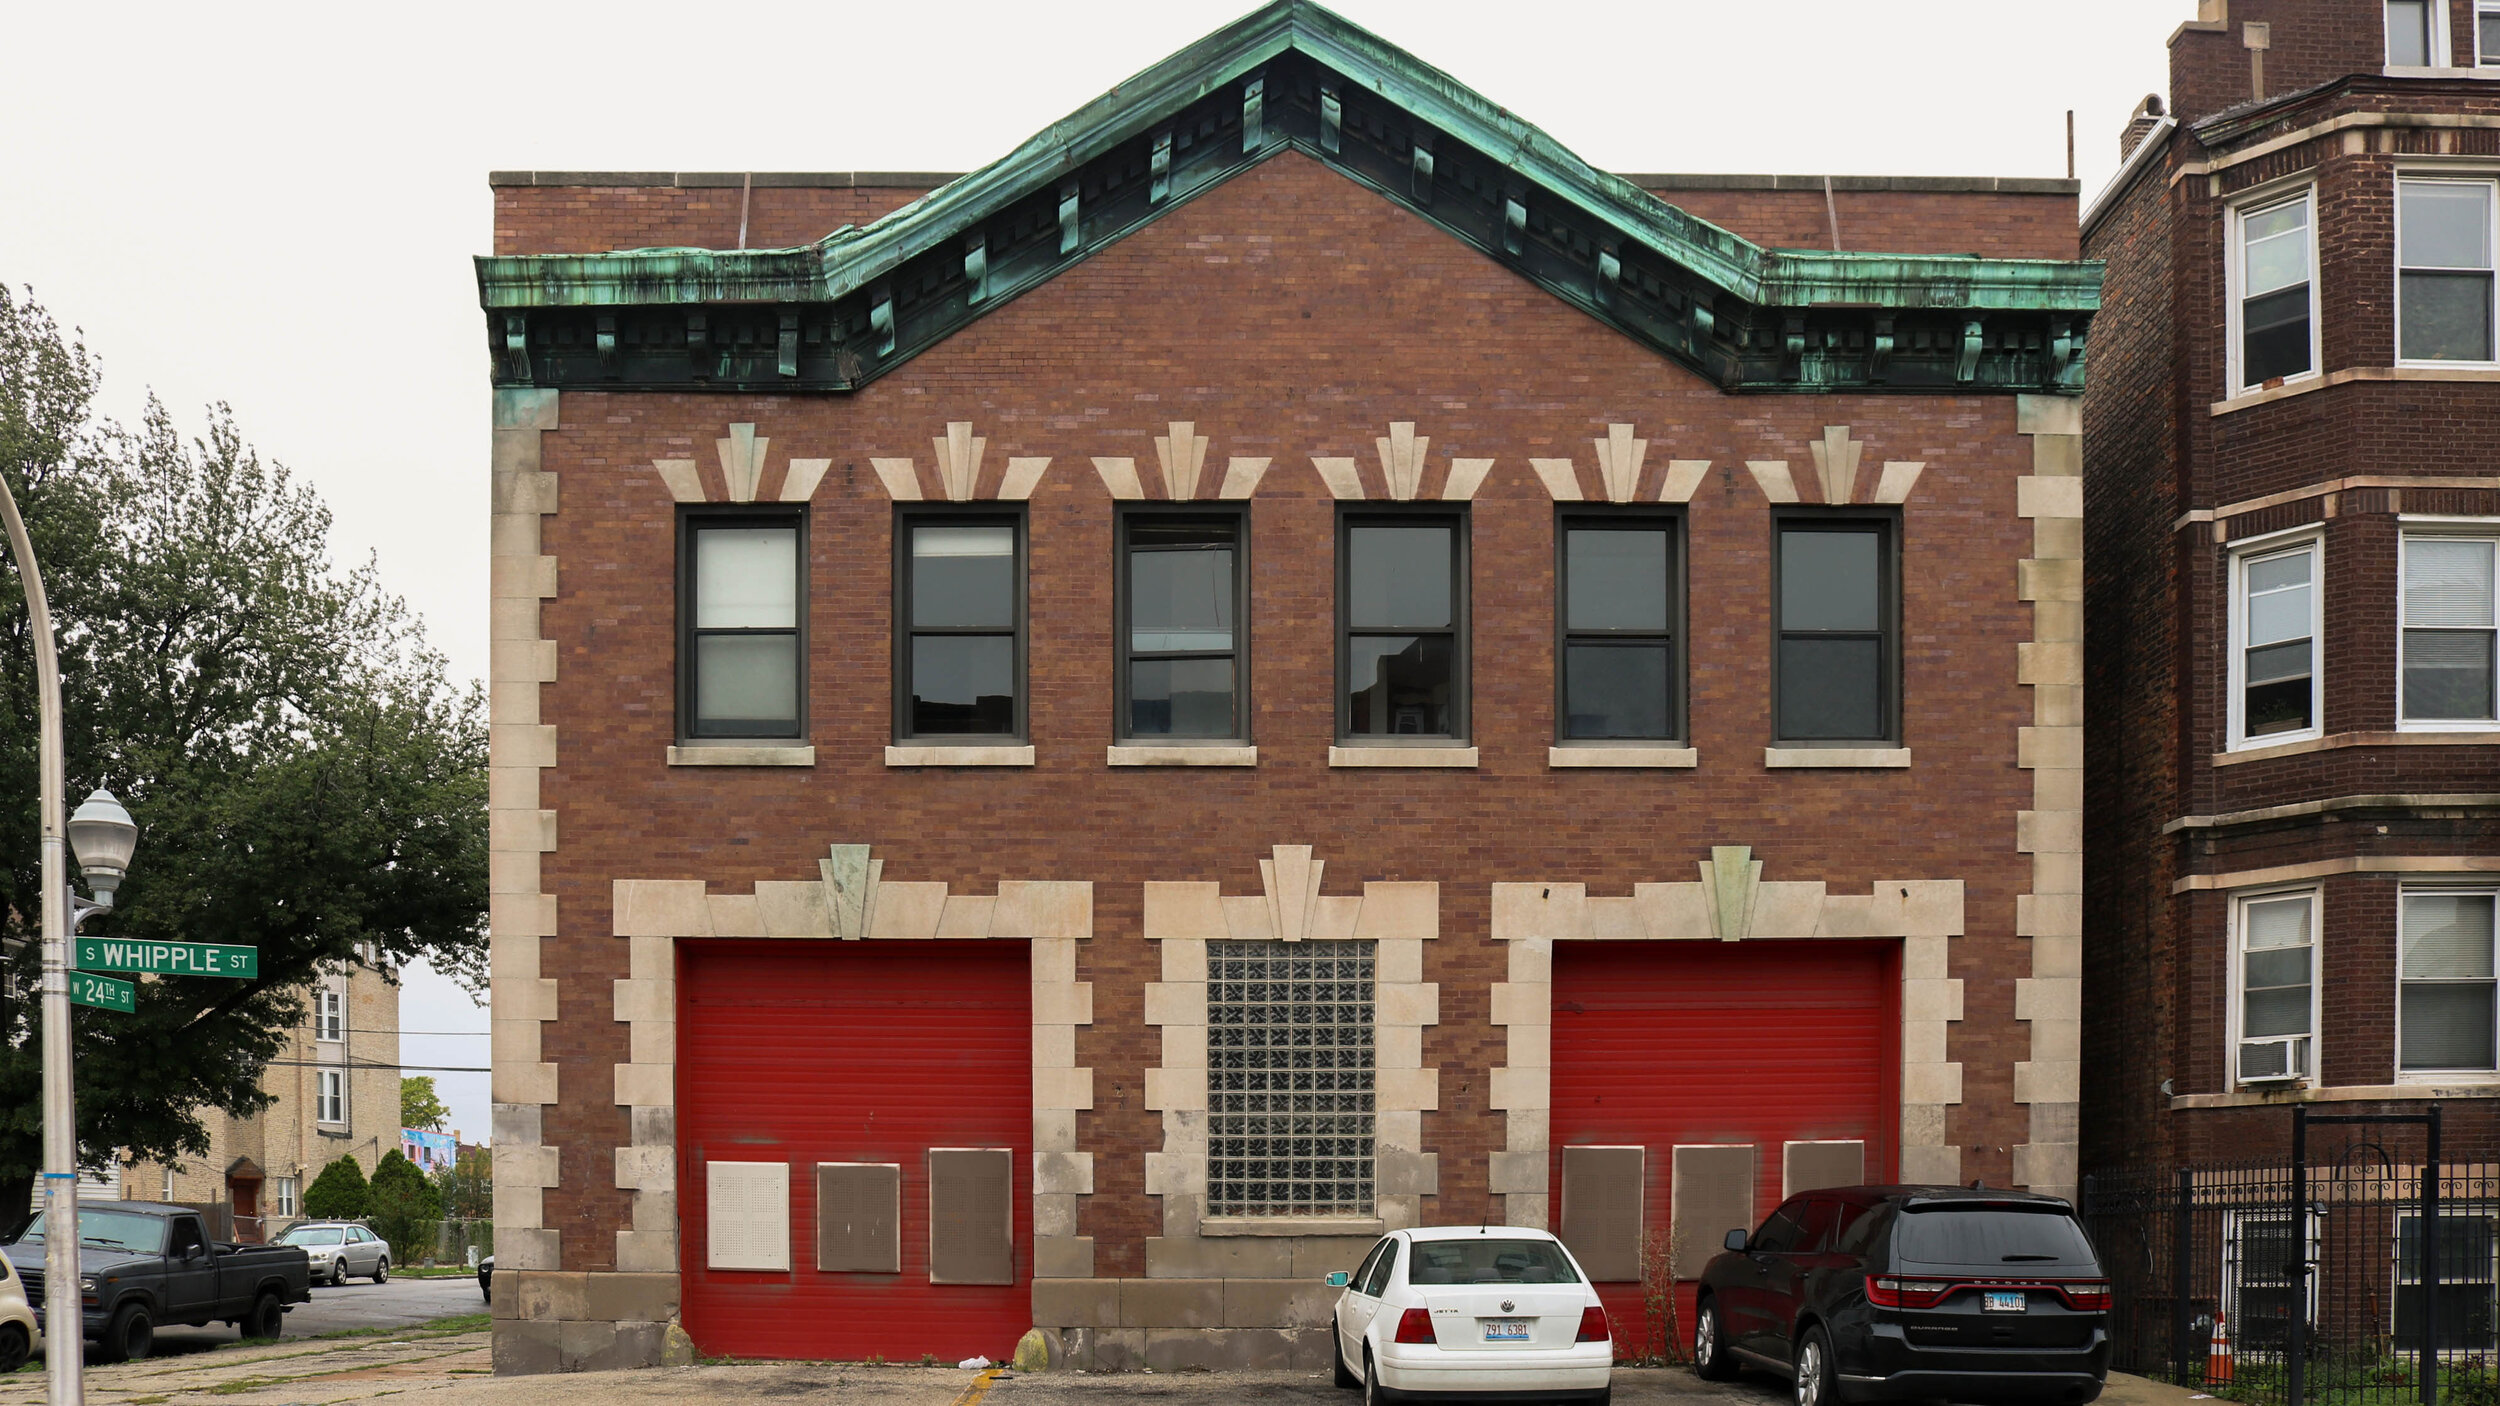 The former fire station located on 2358 S. Whipple St. is now the site of a new potential commercial kitchen. The building has been vacant since the construction of a new fire station in Little Village a block and a half away.